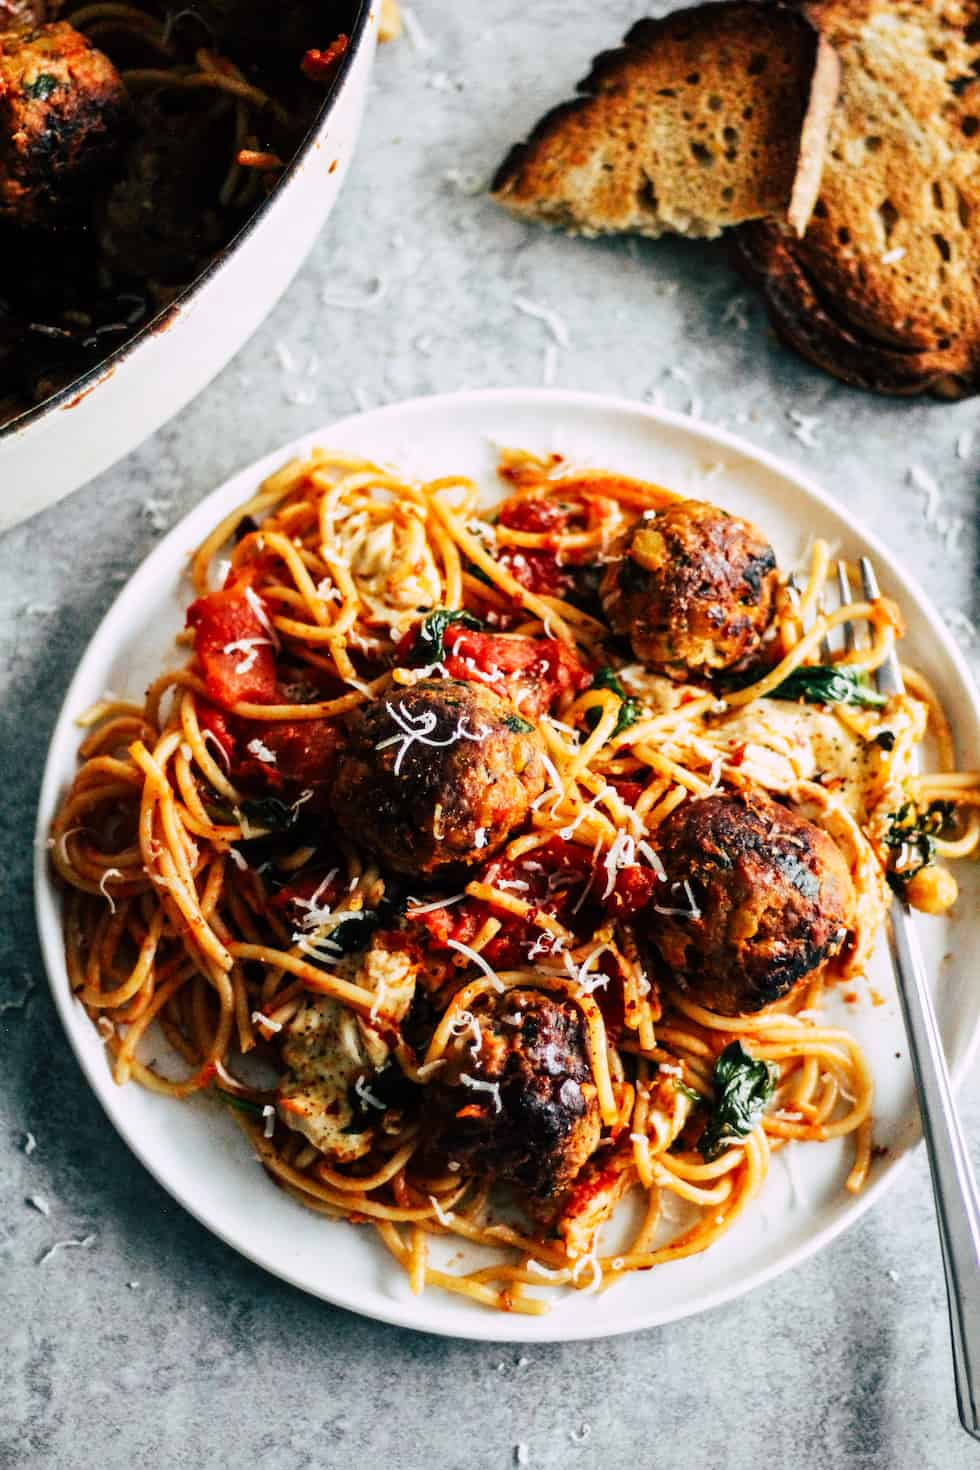 Spaghetti and meatballs on white plate with toasted bread in the background.